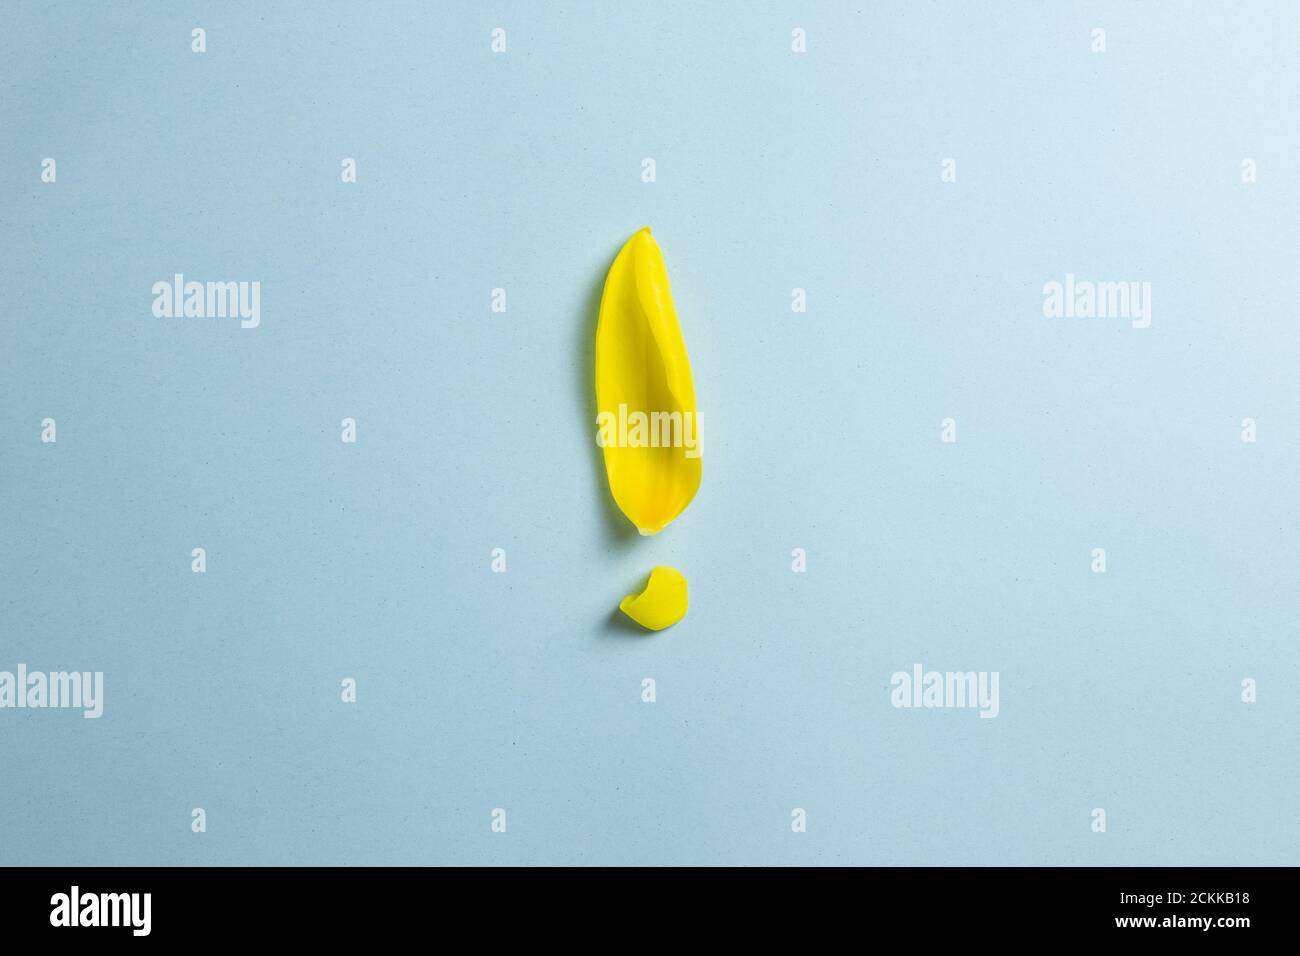 Yellow flower leaf Exclamation mark isolated on blue background. Solution idea concept Stock Photo